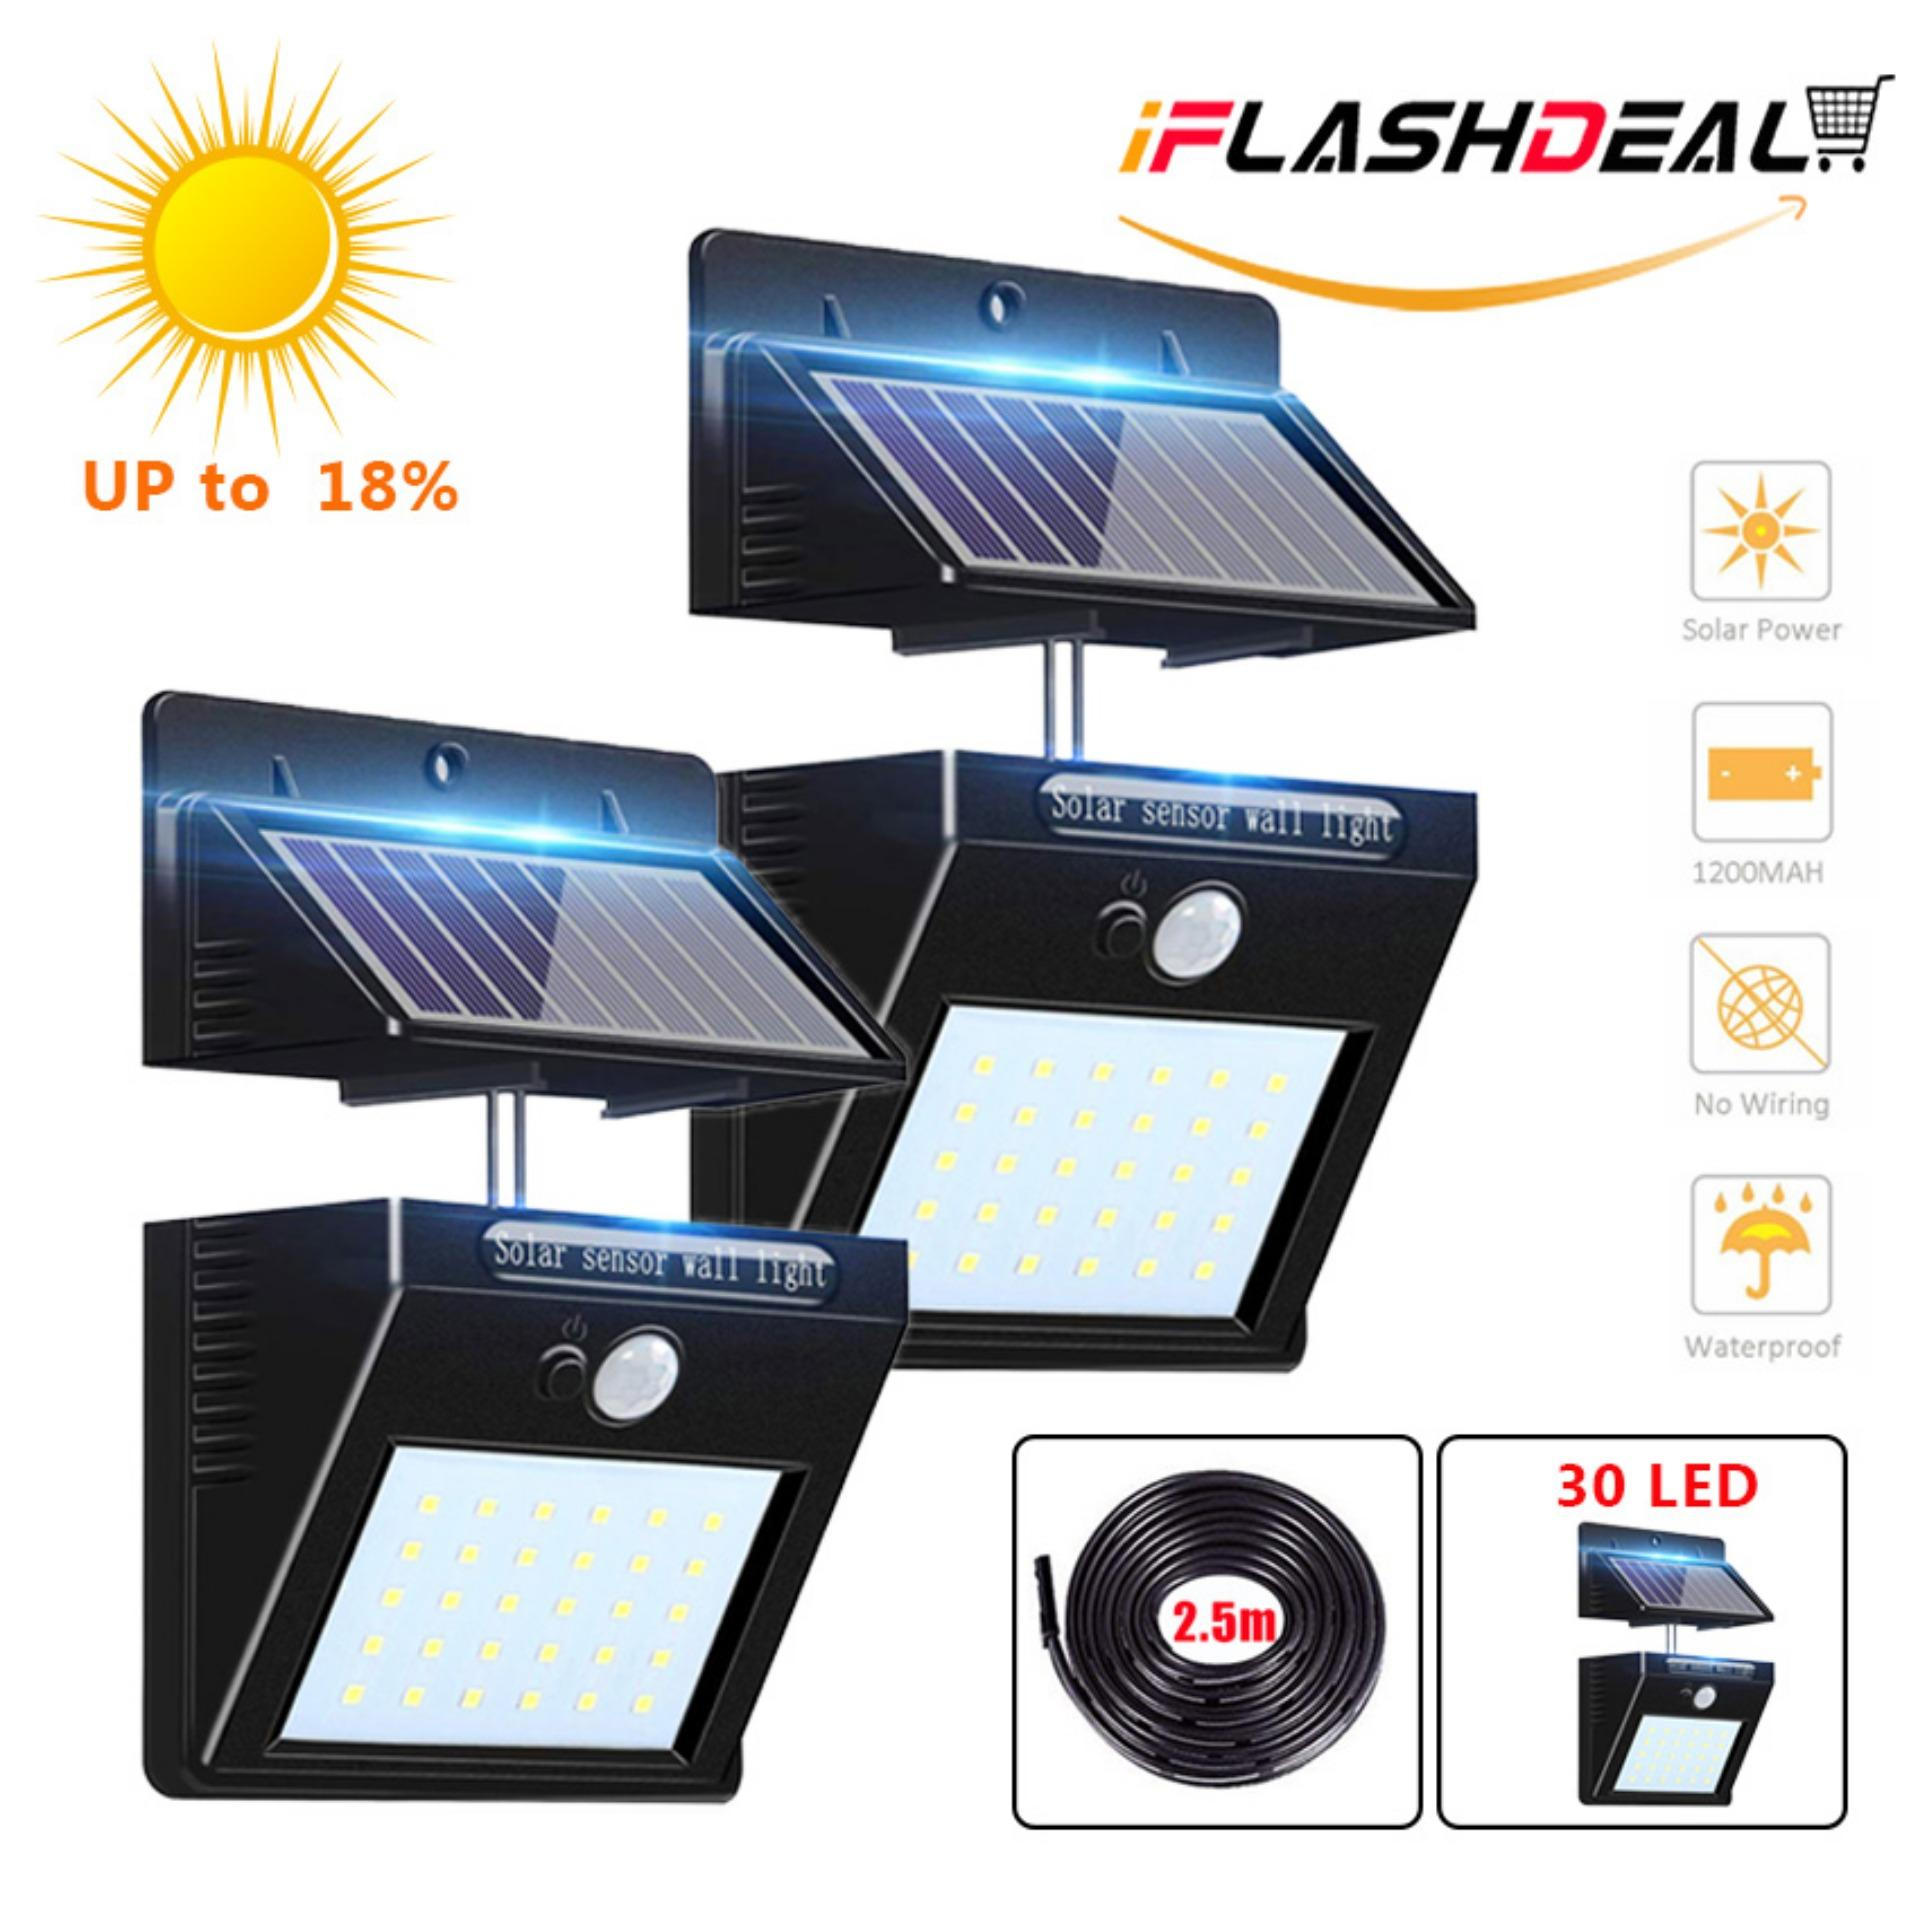 iFlashDeal Outdoor Lighting 30 LED Sensor Solar Wall light with Separable Solar Panel Powered Motion Sensor Light Security Outside Wall Lamp for Driveway Patio Garden Path (2 Pack)